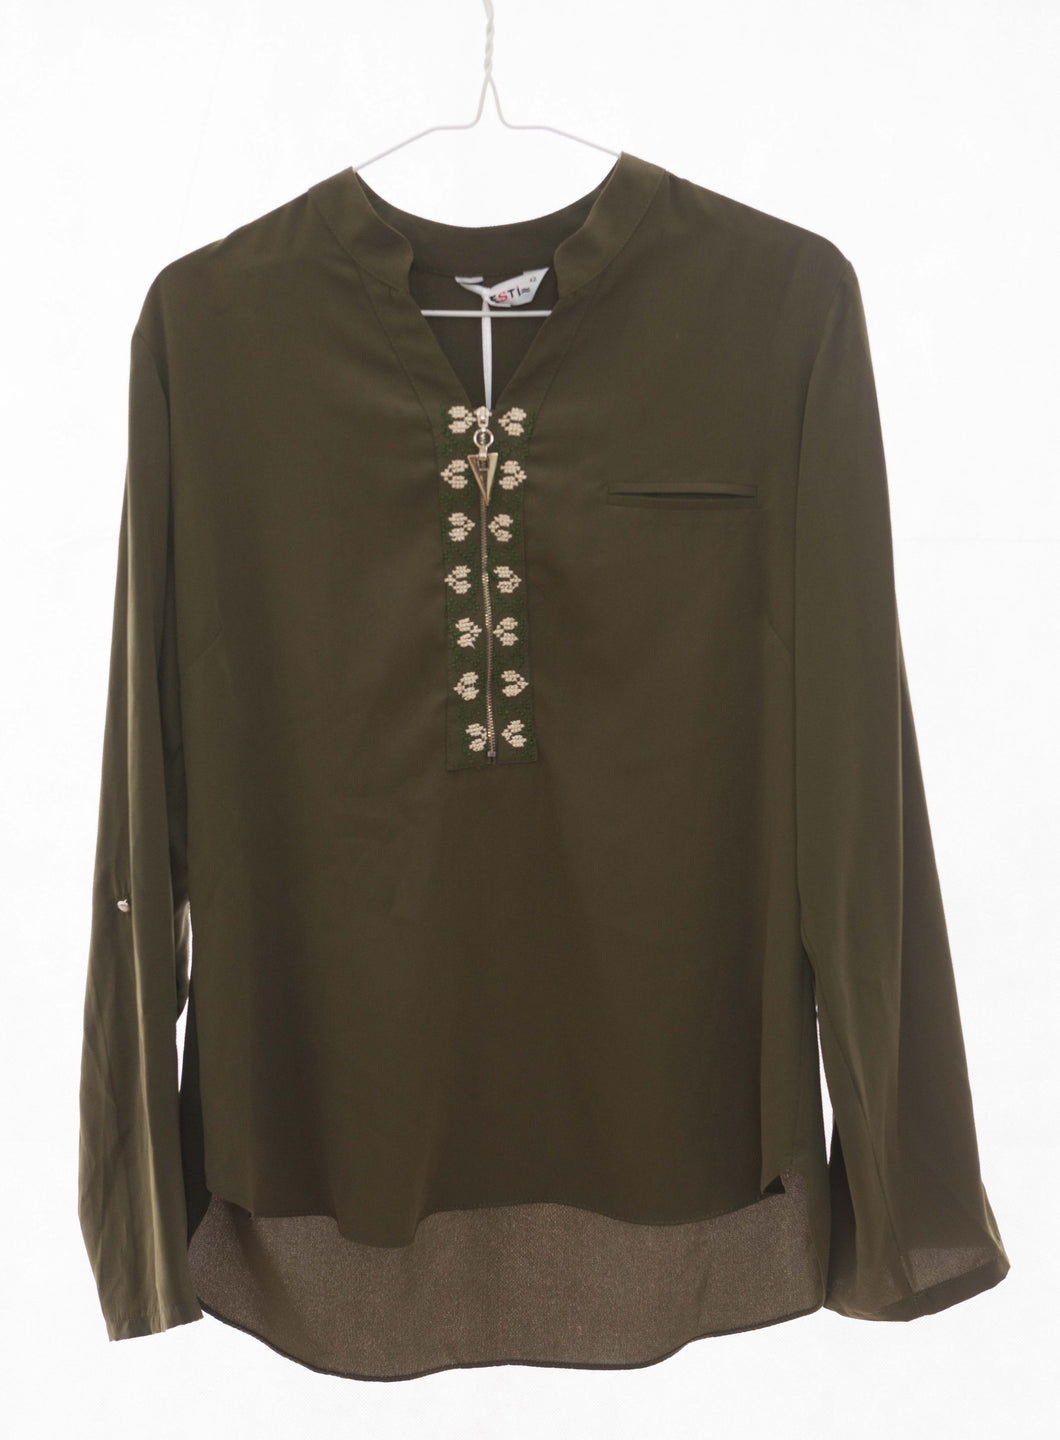 Hand embroidered olive green shirt - Falastini Brand